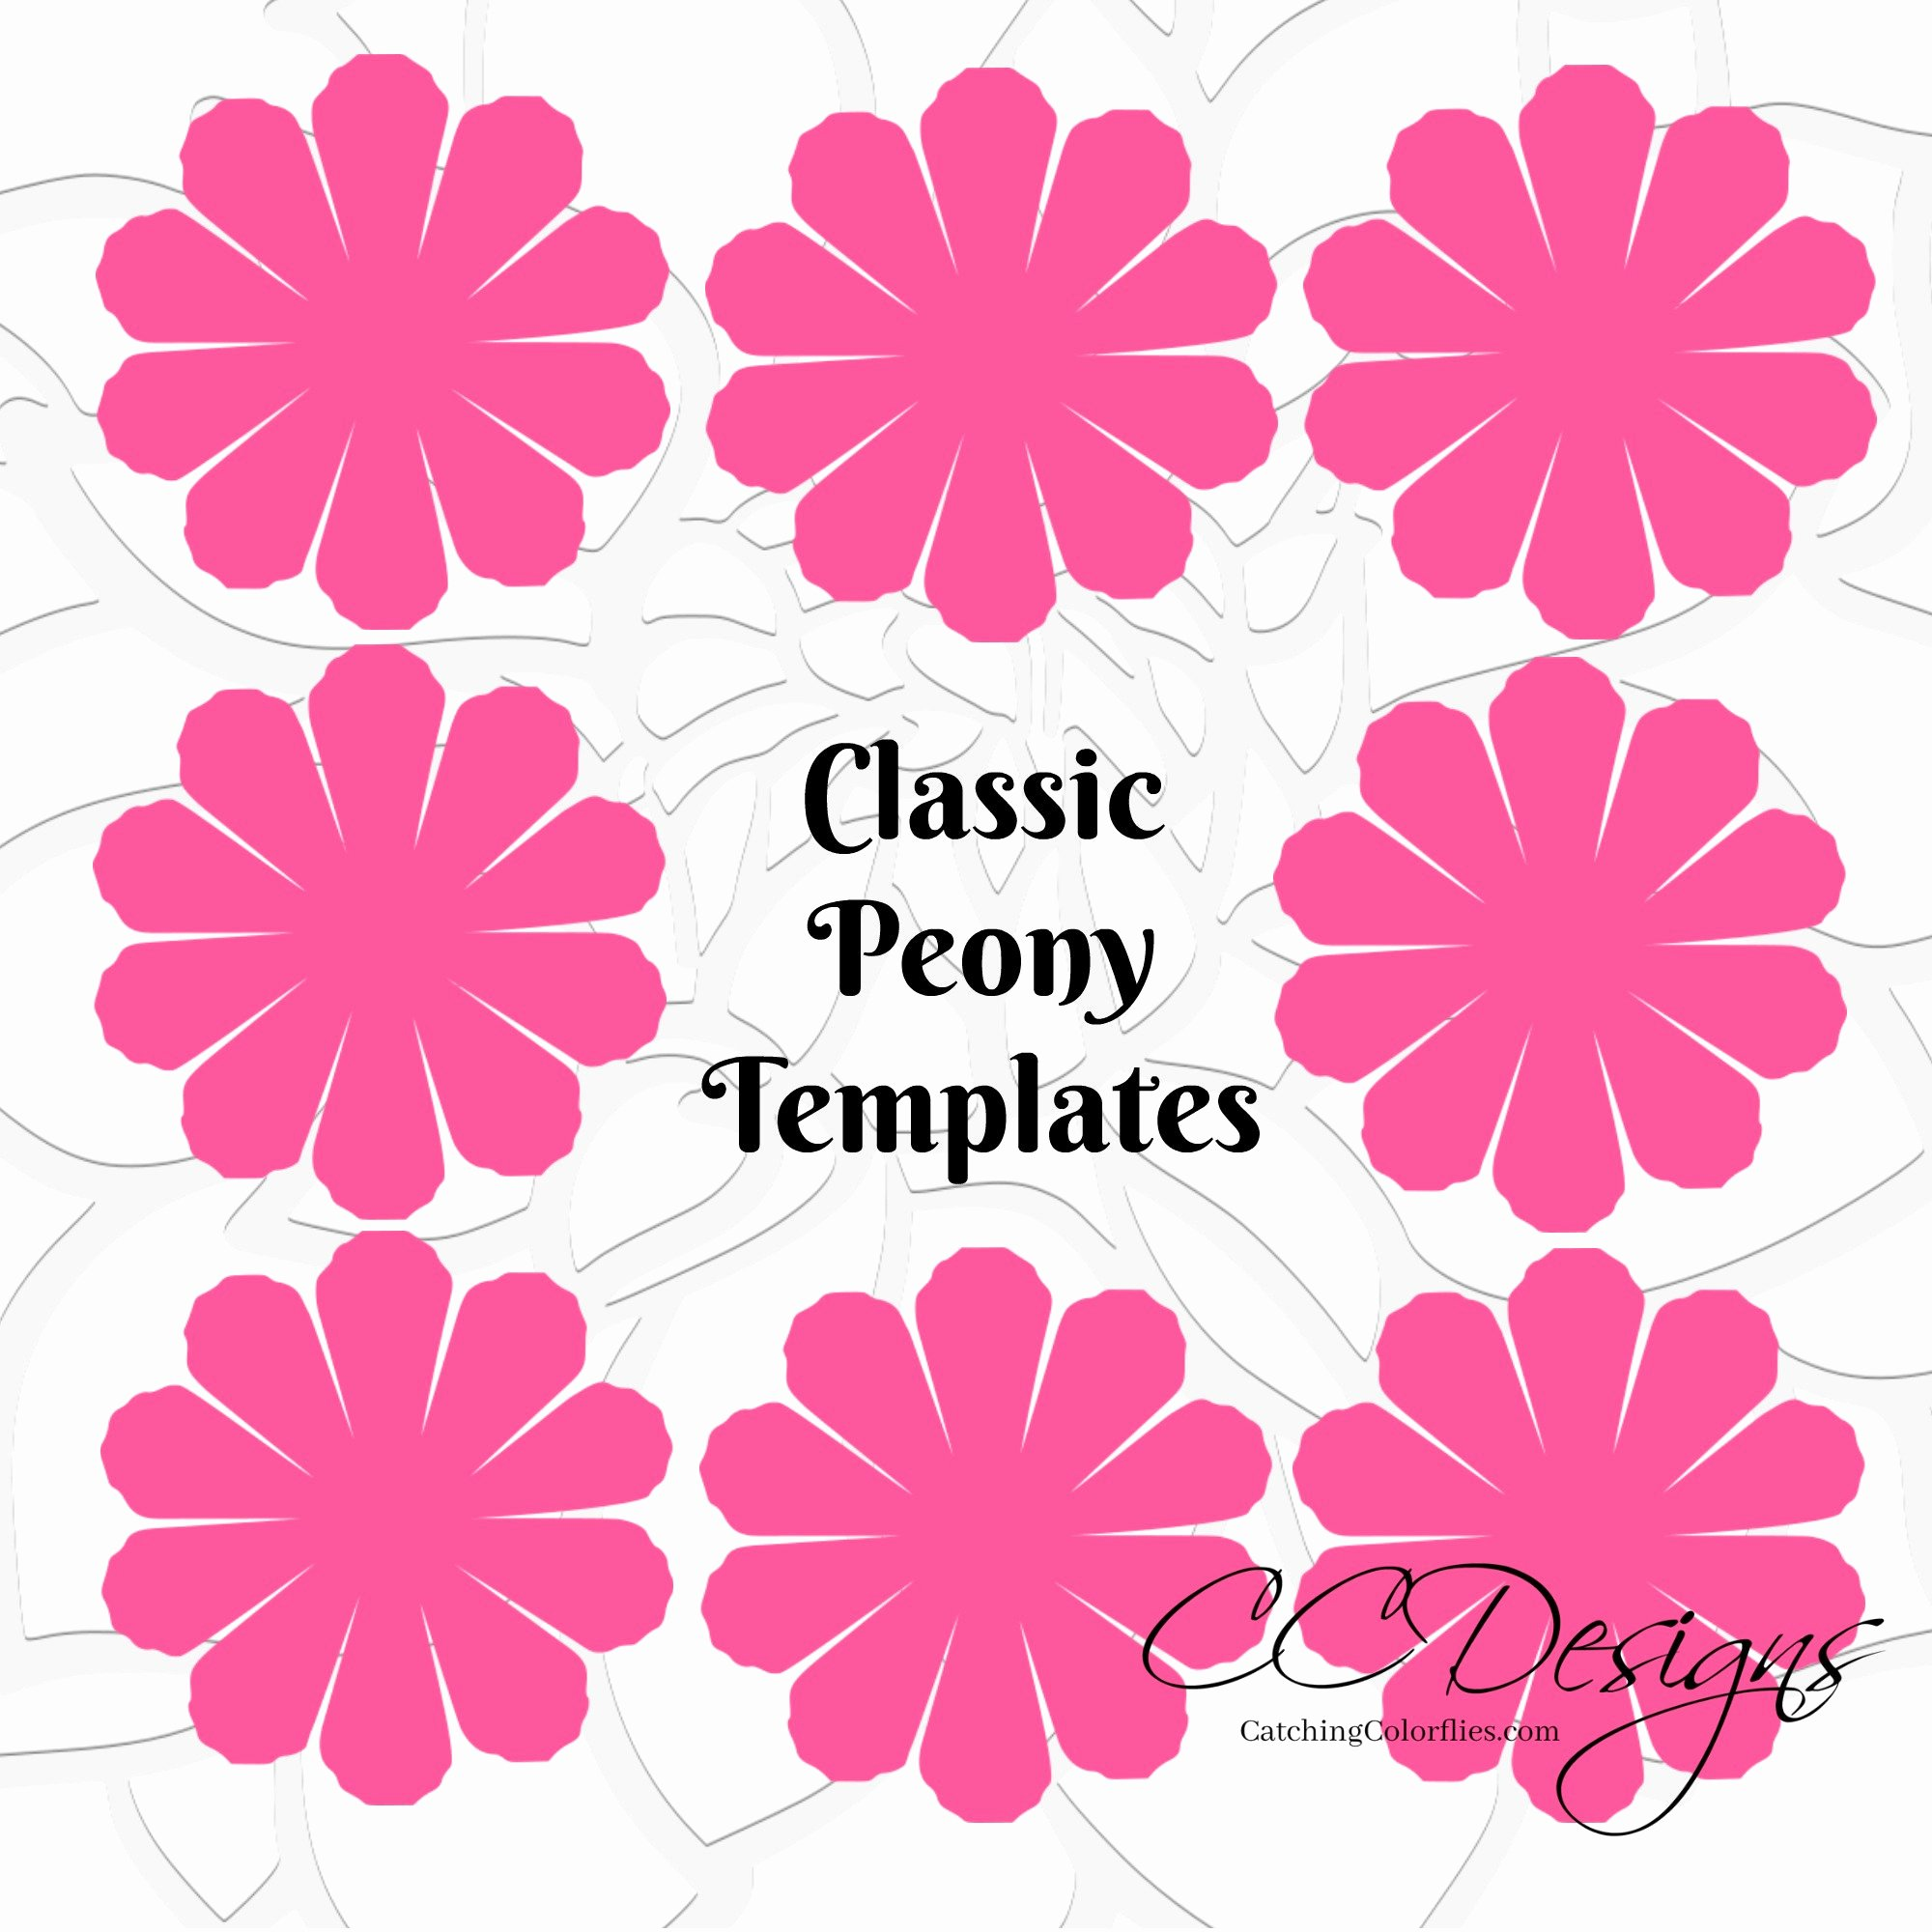 Template for Paper Flowers Luxury Paper Flower Printable Templates Diy Peony Paper Flowers